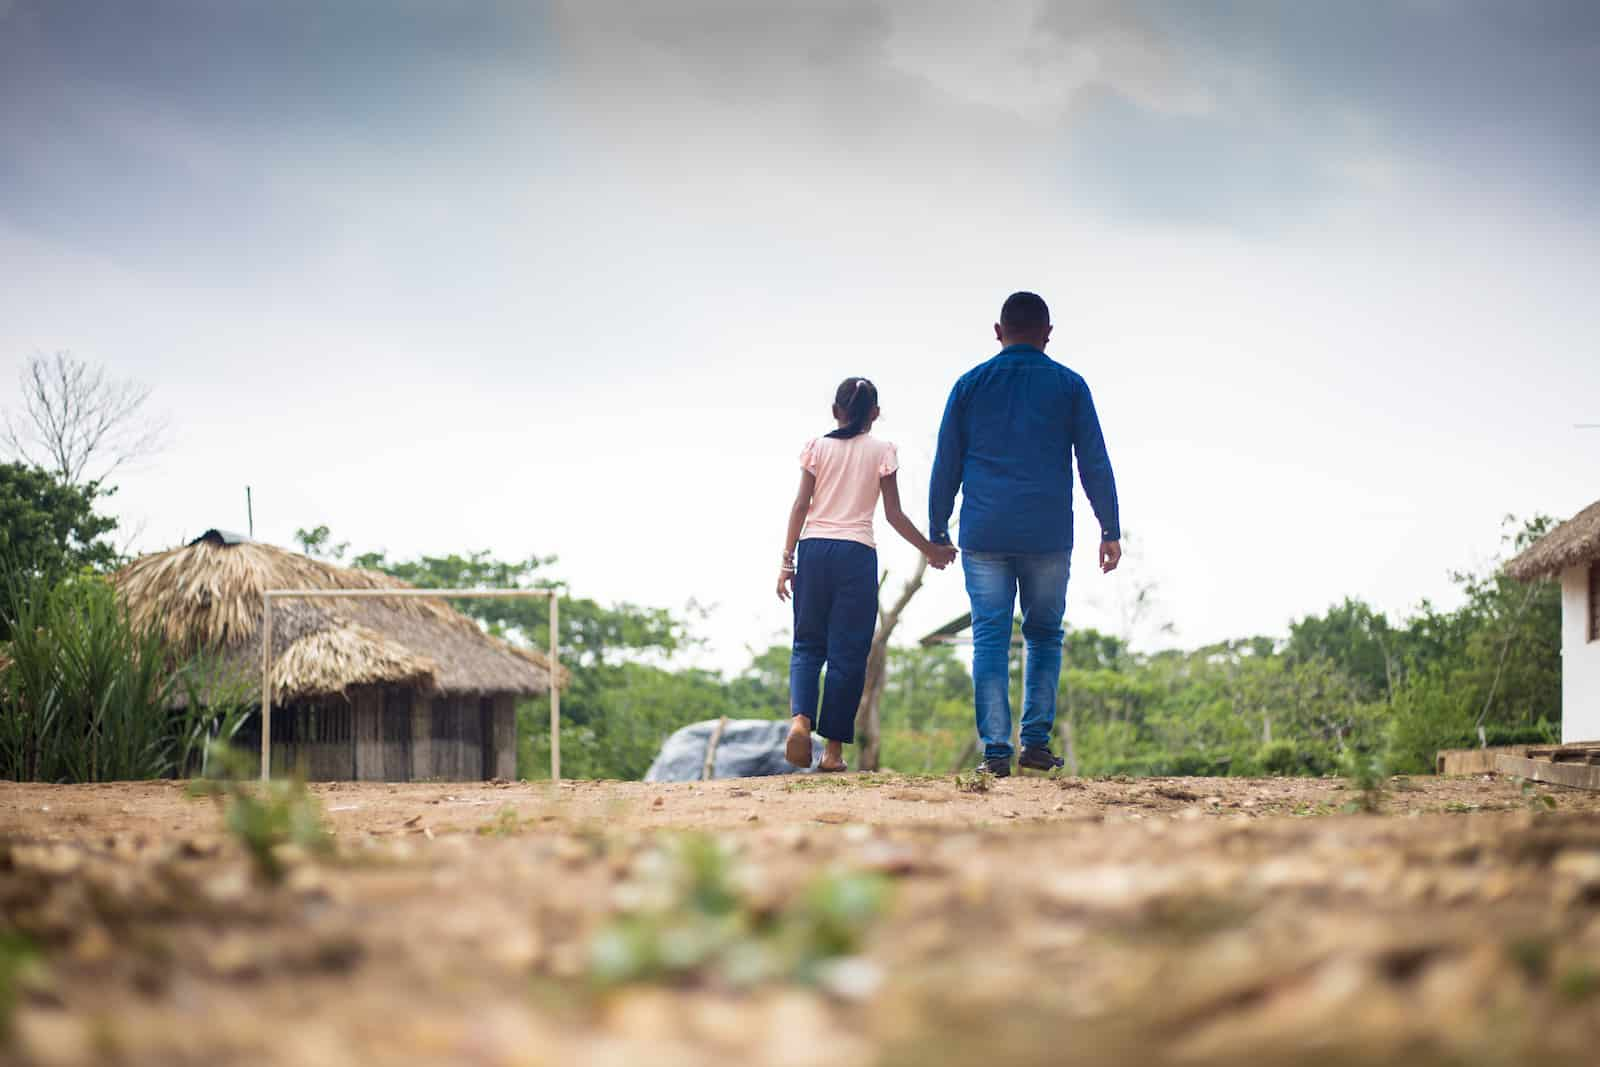 A man and girl walk down a dirt path, holding hands.